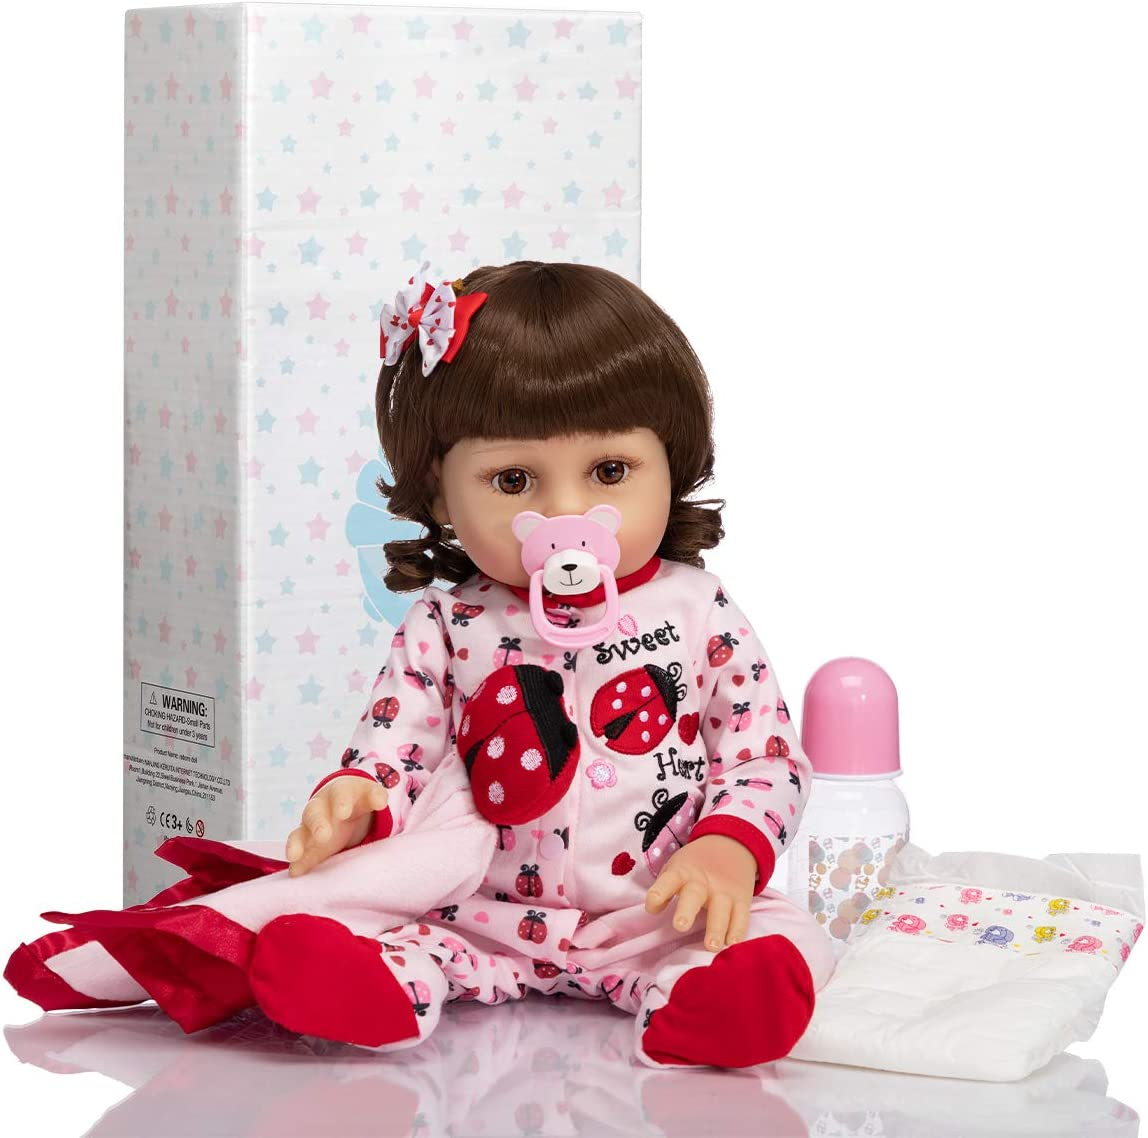 Children Gift Set with Clothes and Toy MATICO Lifelike Reborn Baby Doll 19 Inch Soft Realistic Silicone Vinyl Weighted Full Body